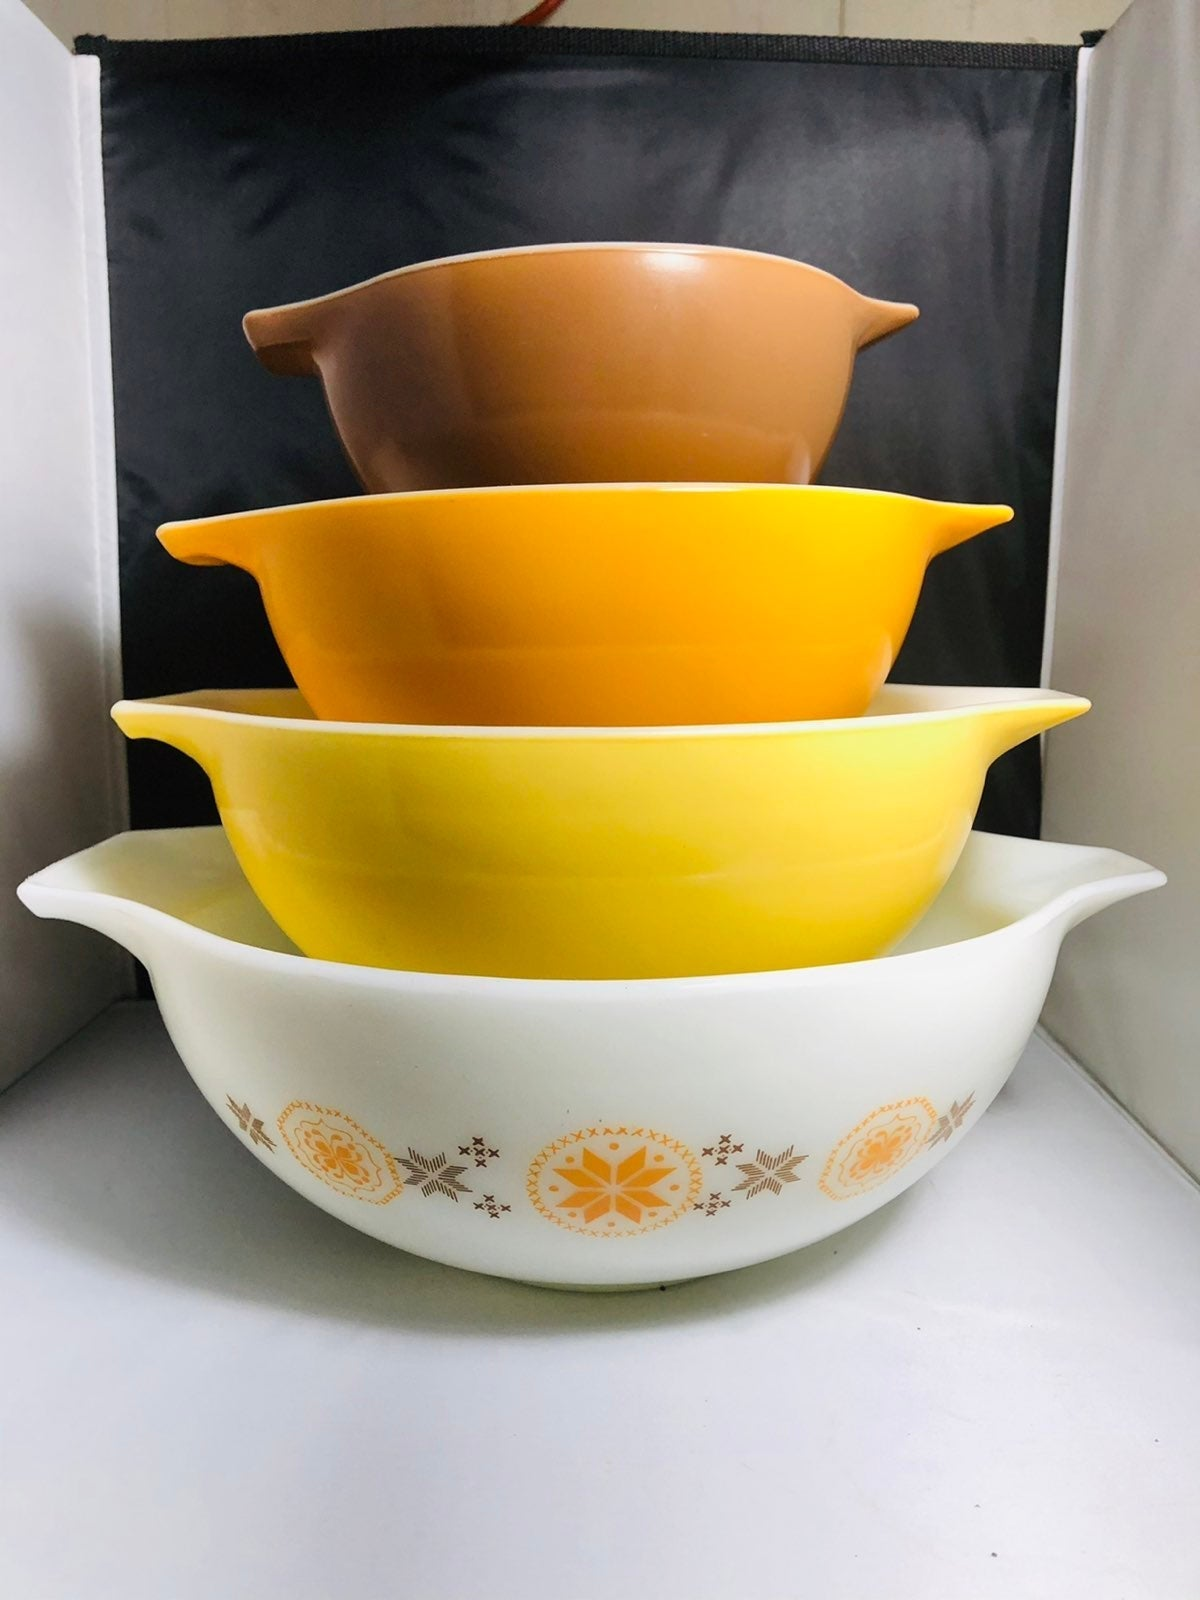 Town and country vintage pyrex